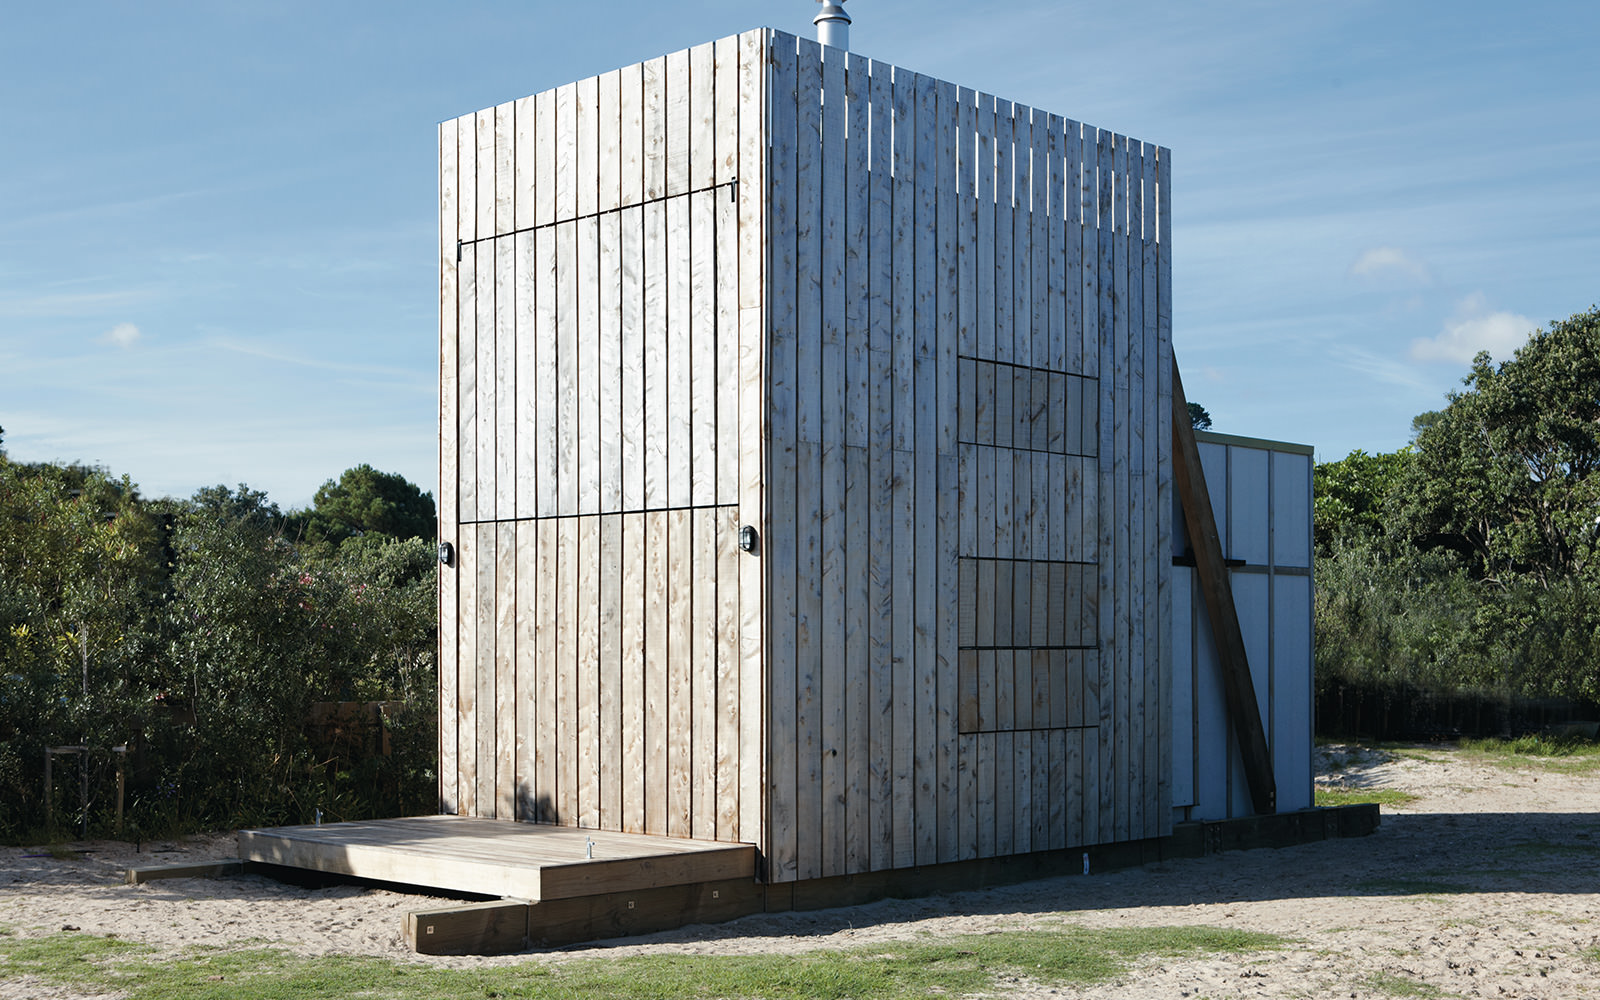 petite-maison-de-vacances-neo-zelandaise-hut-on-sleds-house-crosson-clarke-carnachan